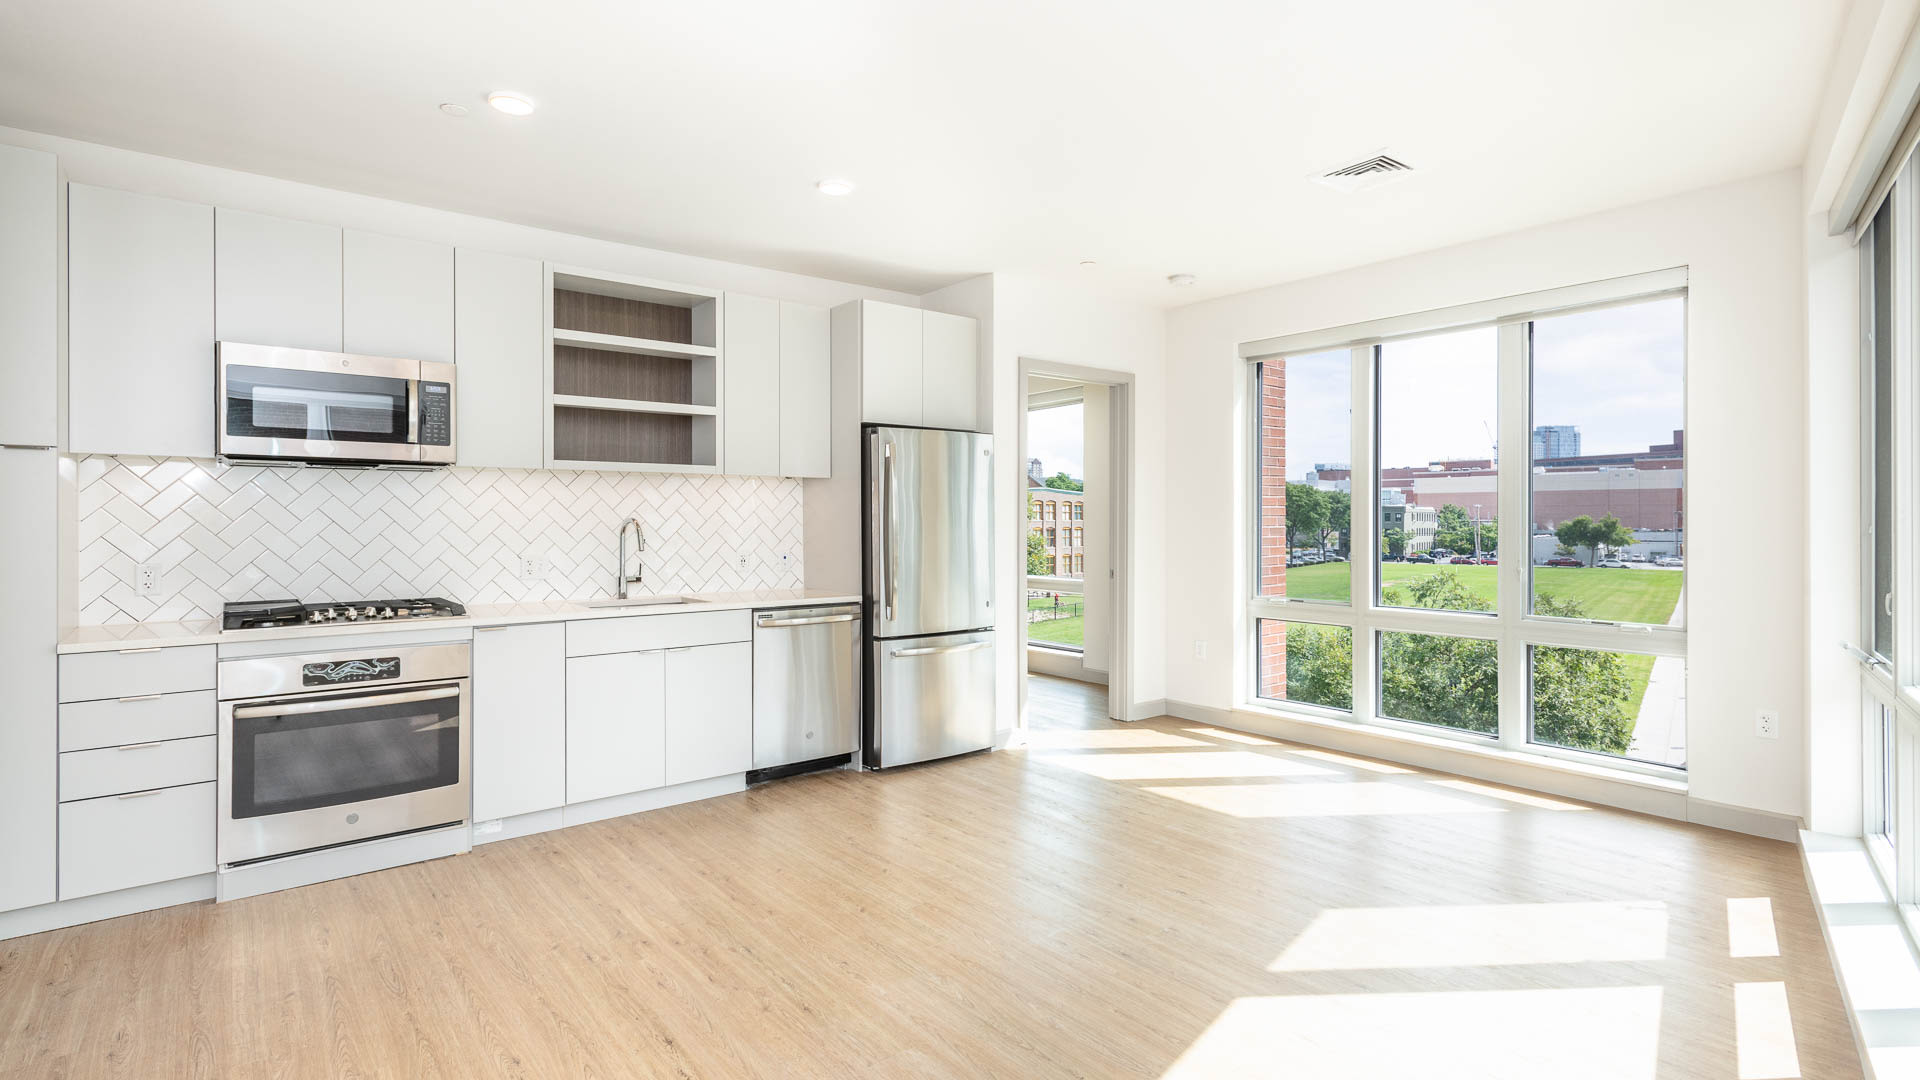 Lofts at Kendall Square Apartments - Kitchen and Living Area